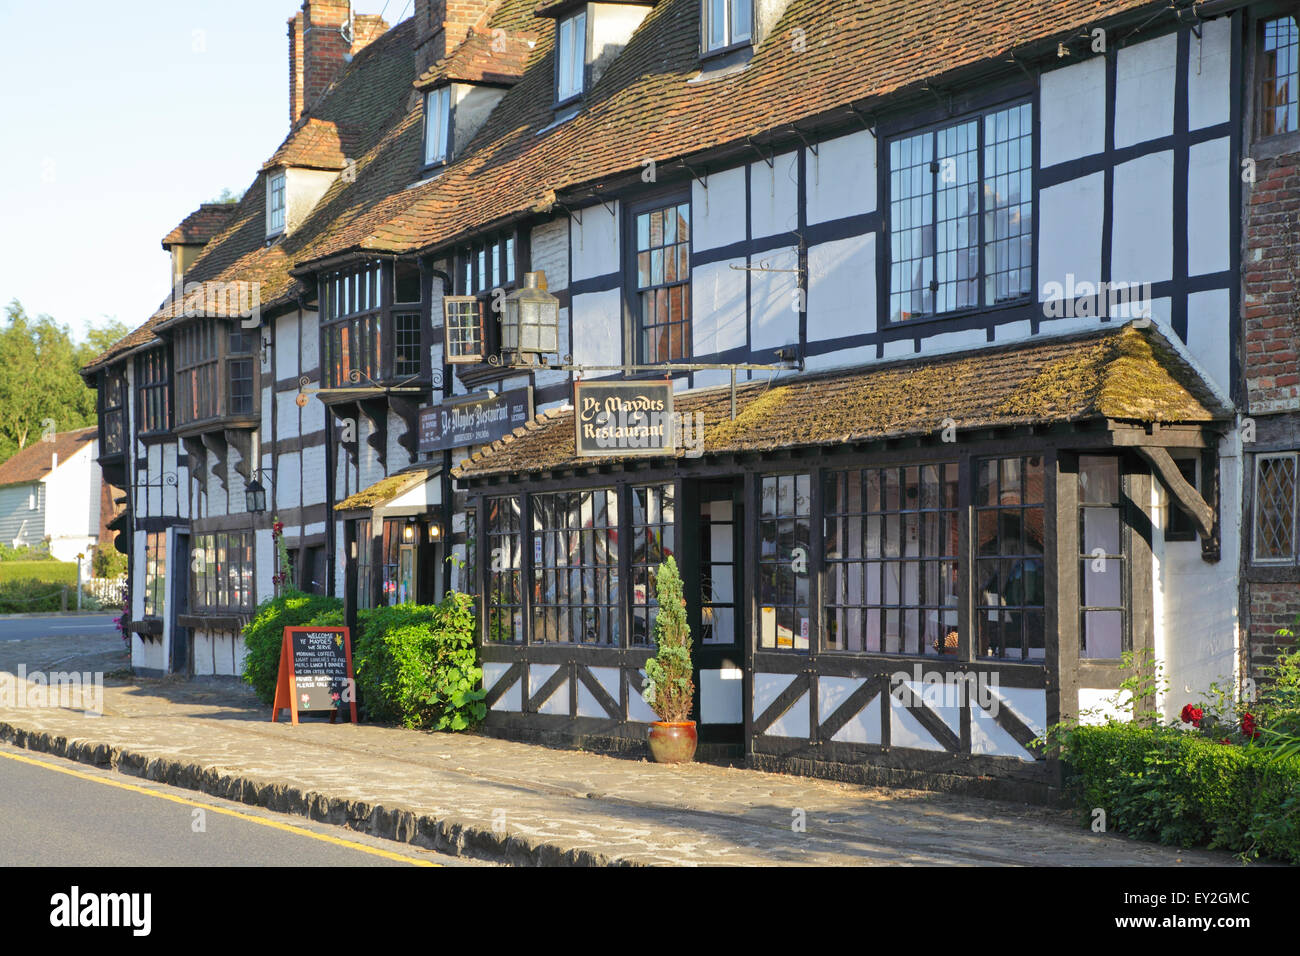 Biddenden Kent, Maydes Restaurant in old Medieval Weavers Houses, England, Britain, UK, GB Stock Photo